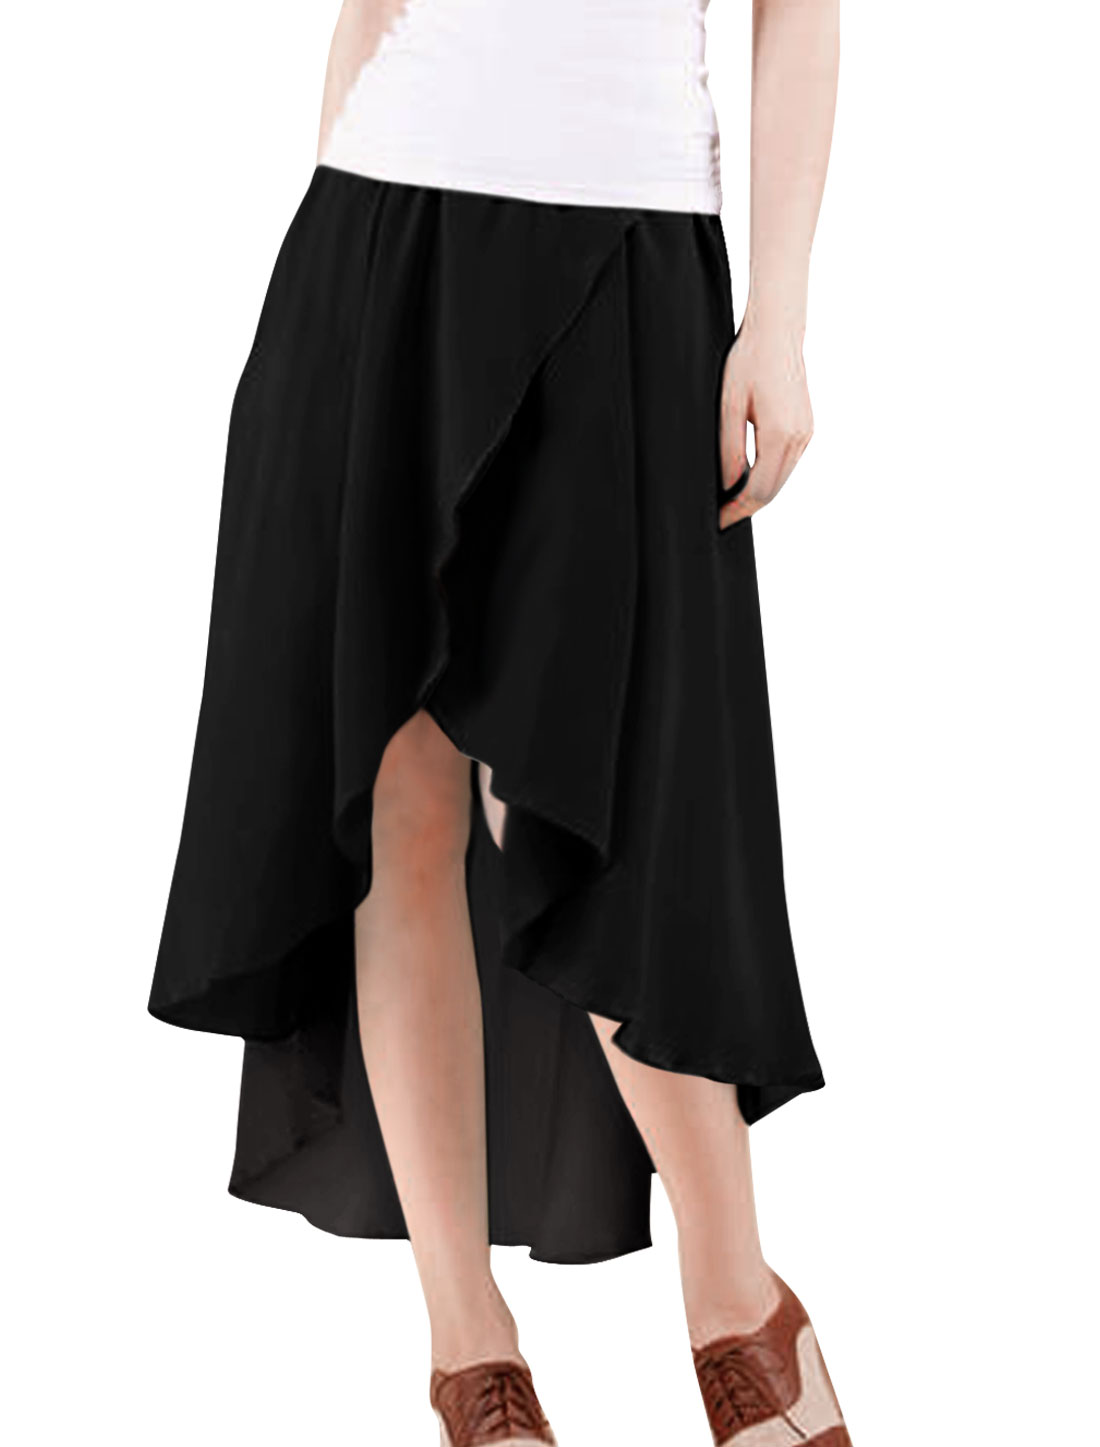 Allegra K Woman Chic Split Front Detail Solid Color Black Casual Skirt M